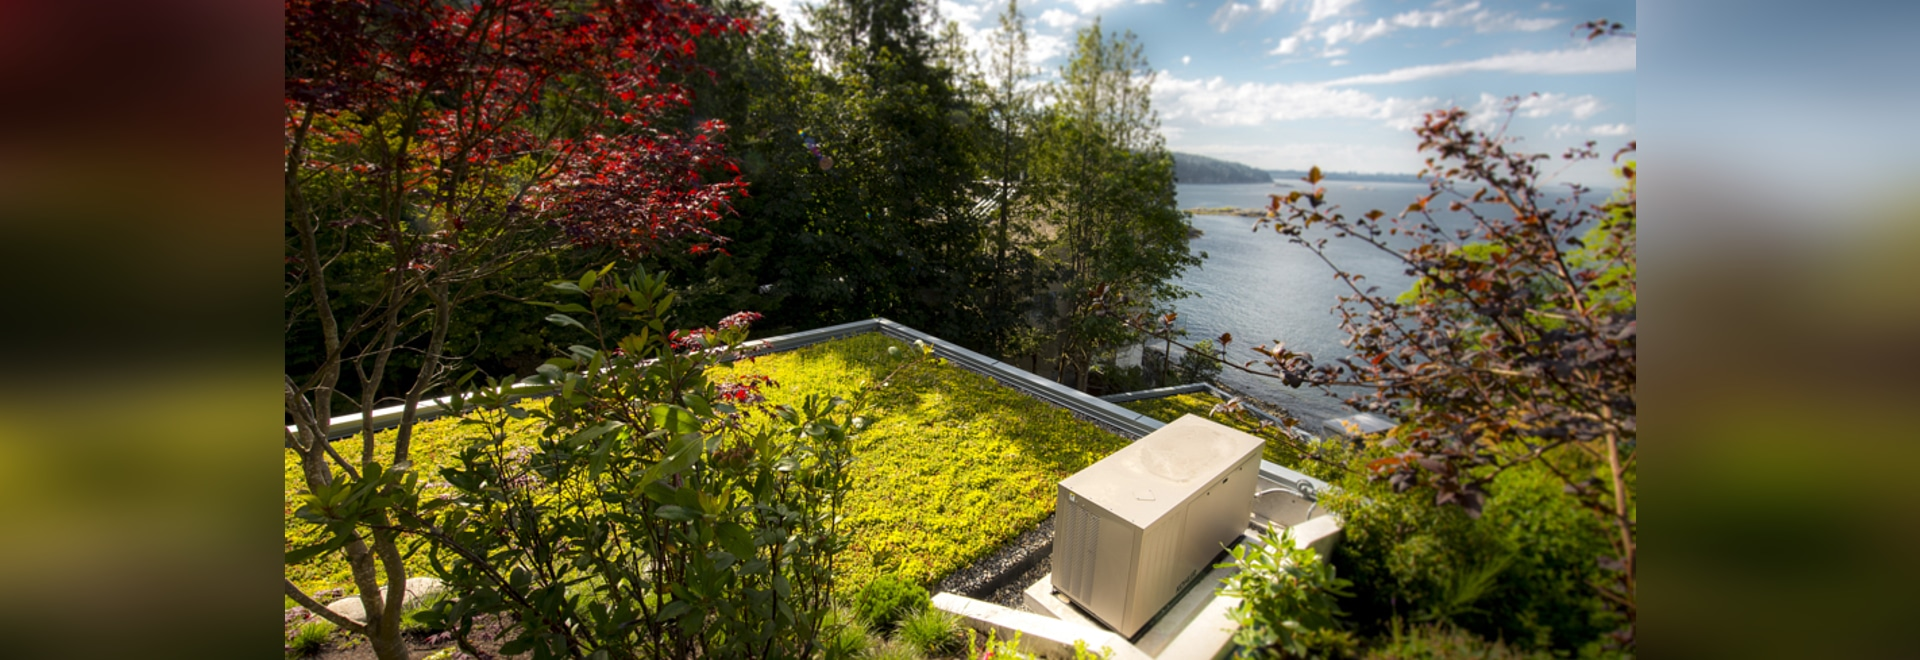 180 m² of sedum green roof are framed by the spectacular backdrop of the Pacific Ocean. Source: Brett Ryan Studios, Vancouver